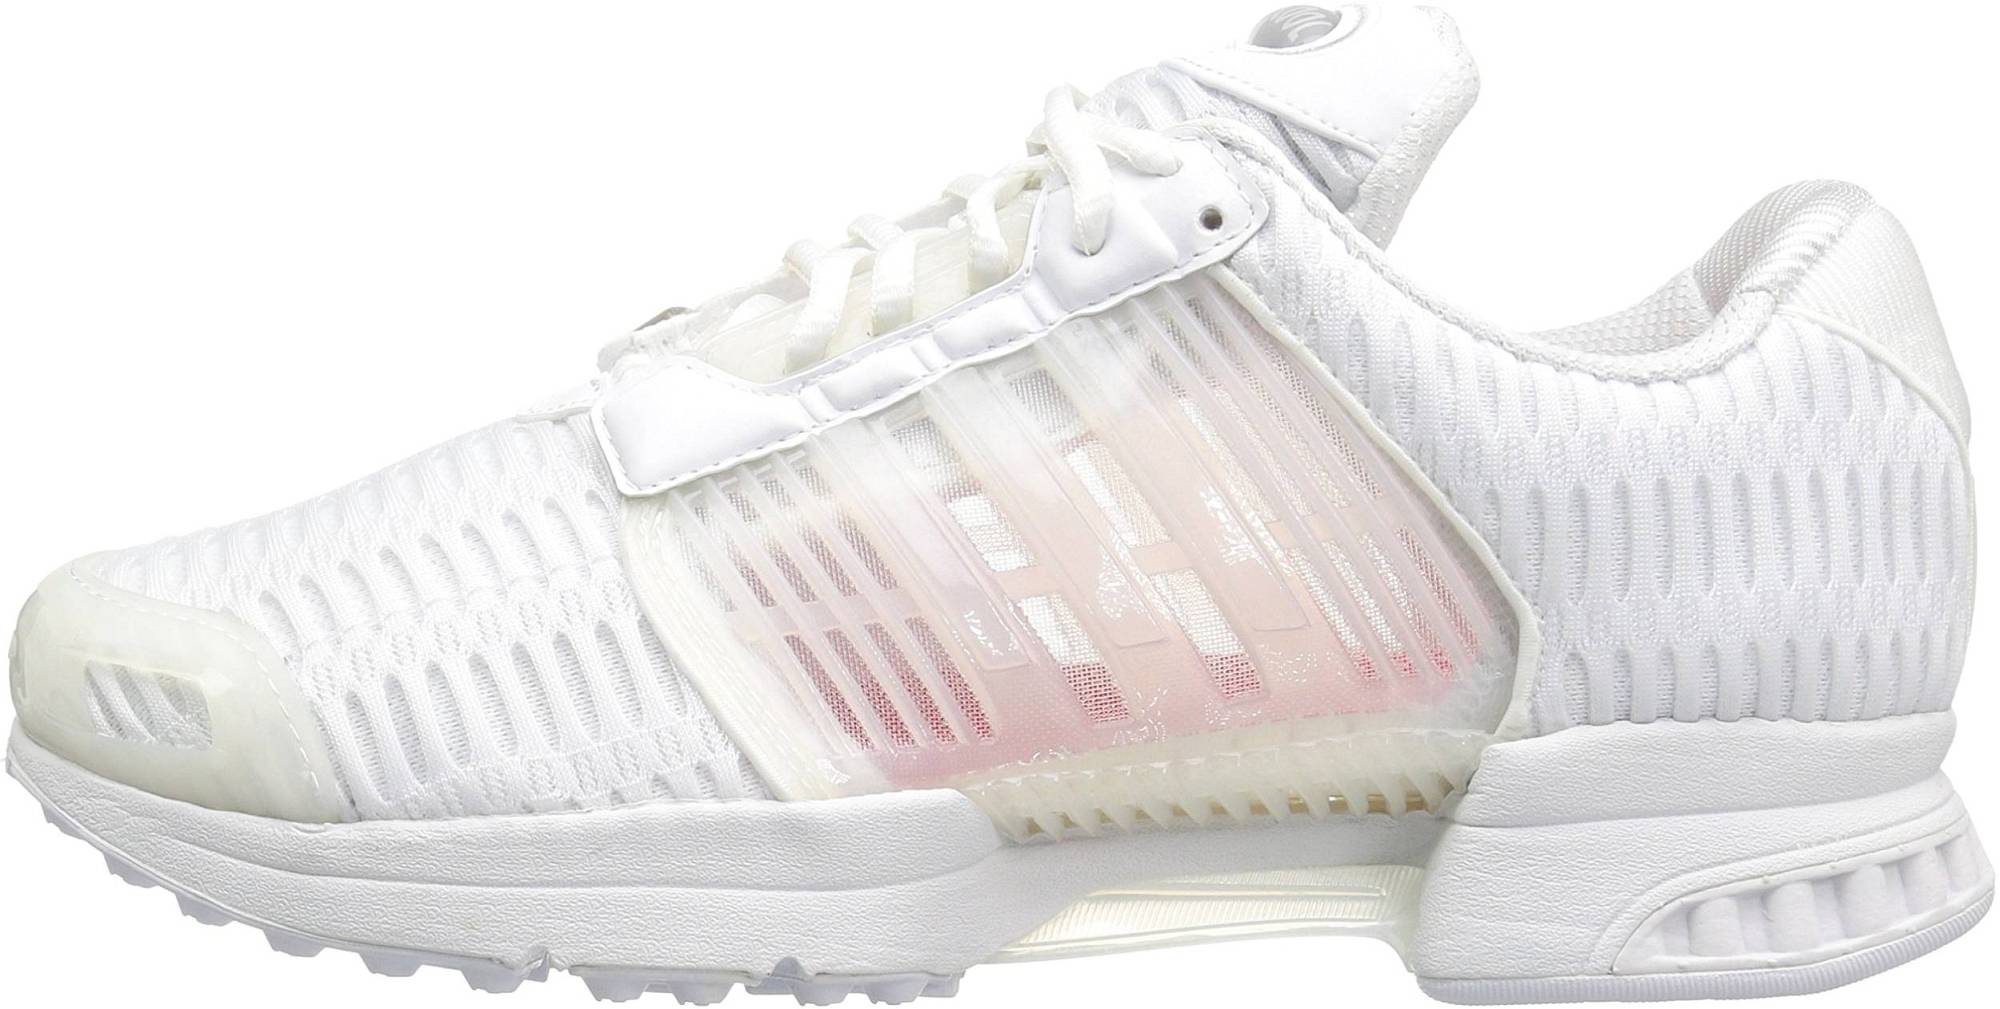 Adidas Climacool 1 – Shoes Reviews & Reasons To Buy